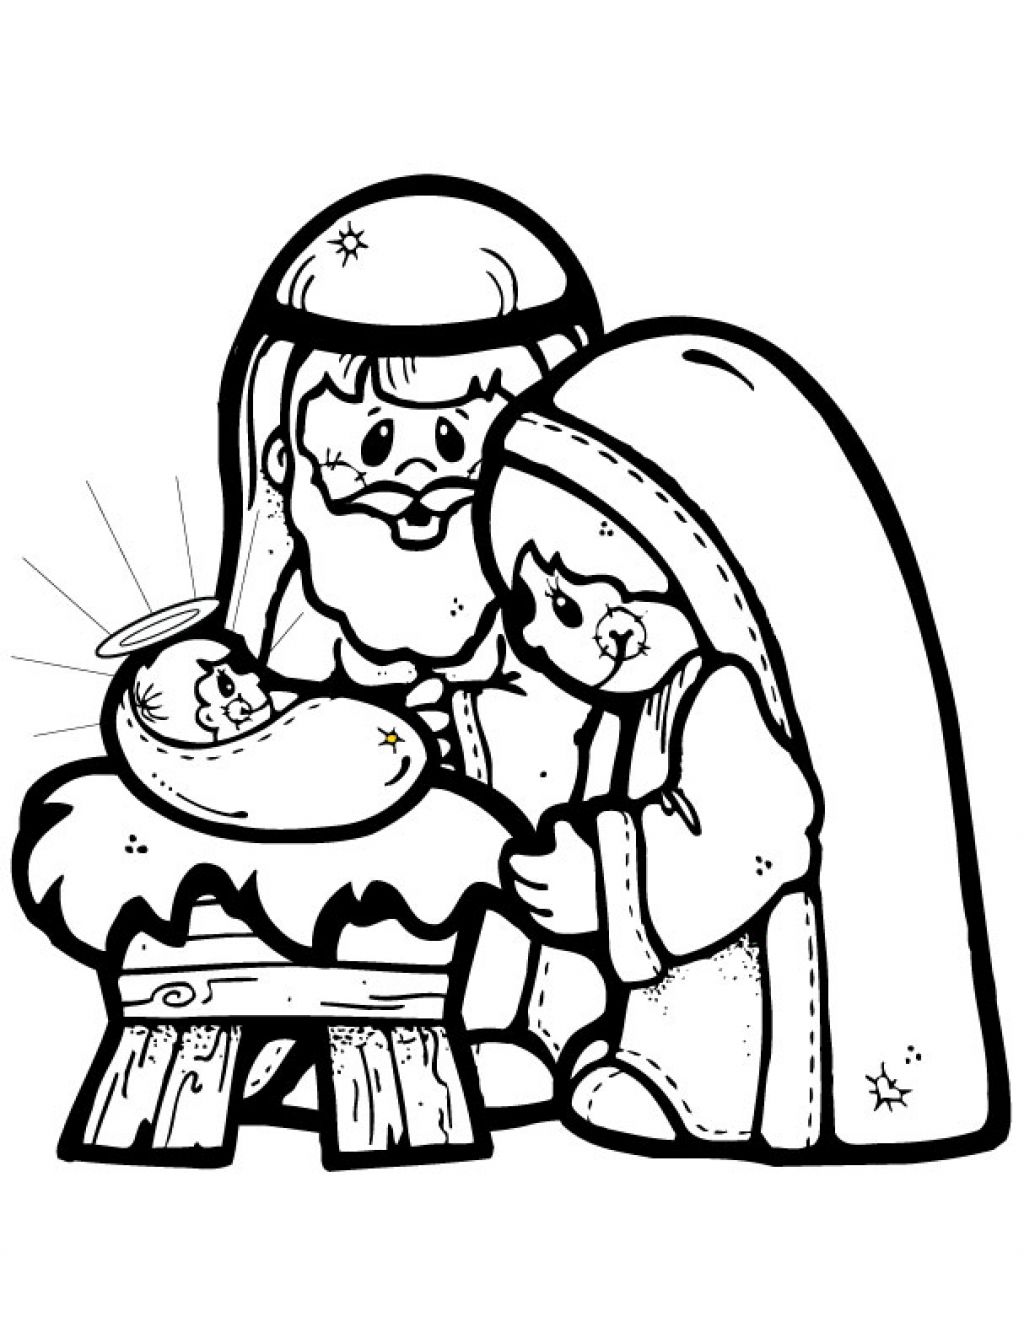 Nativity black and white nativity clip art black and white for Nativity animals coloring pages